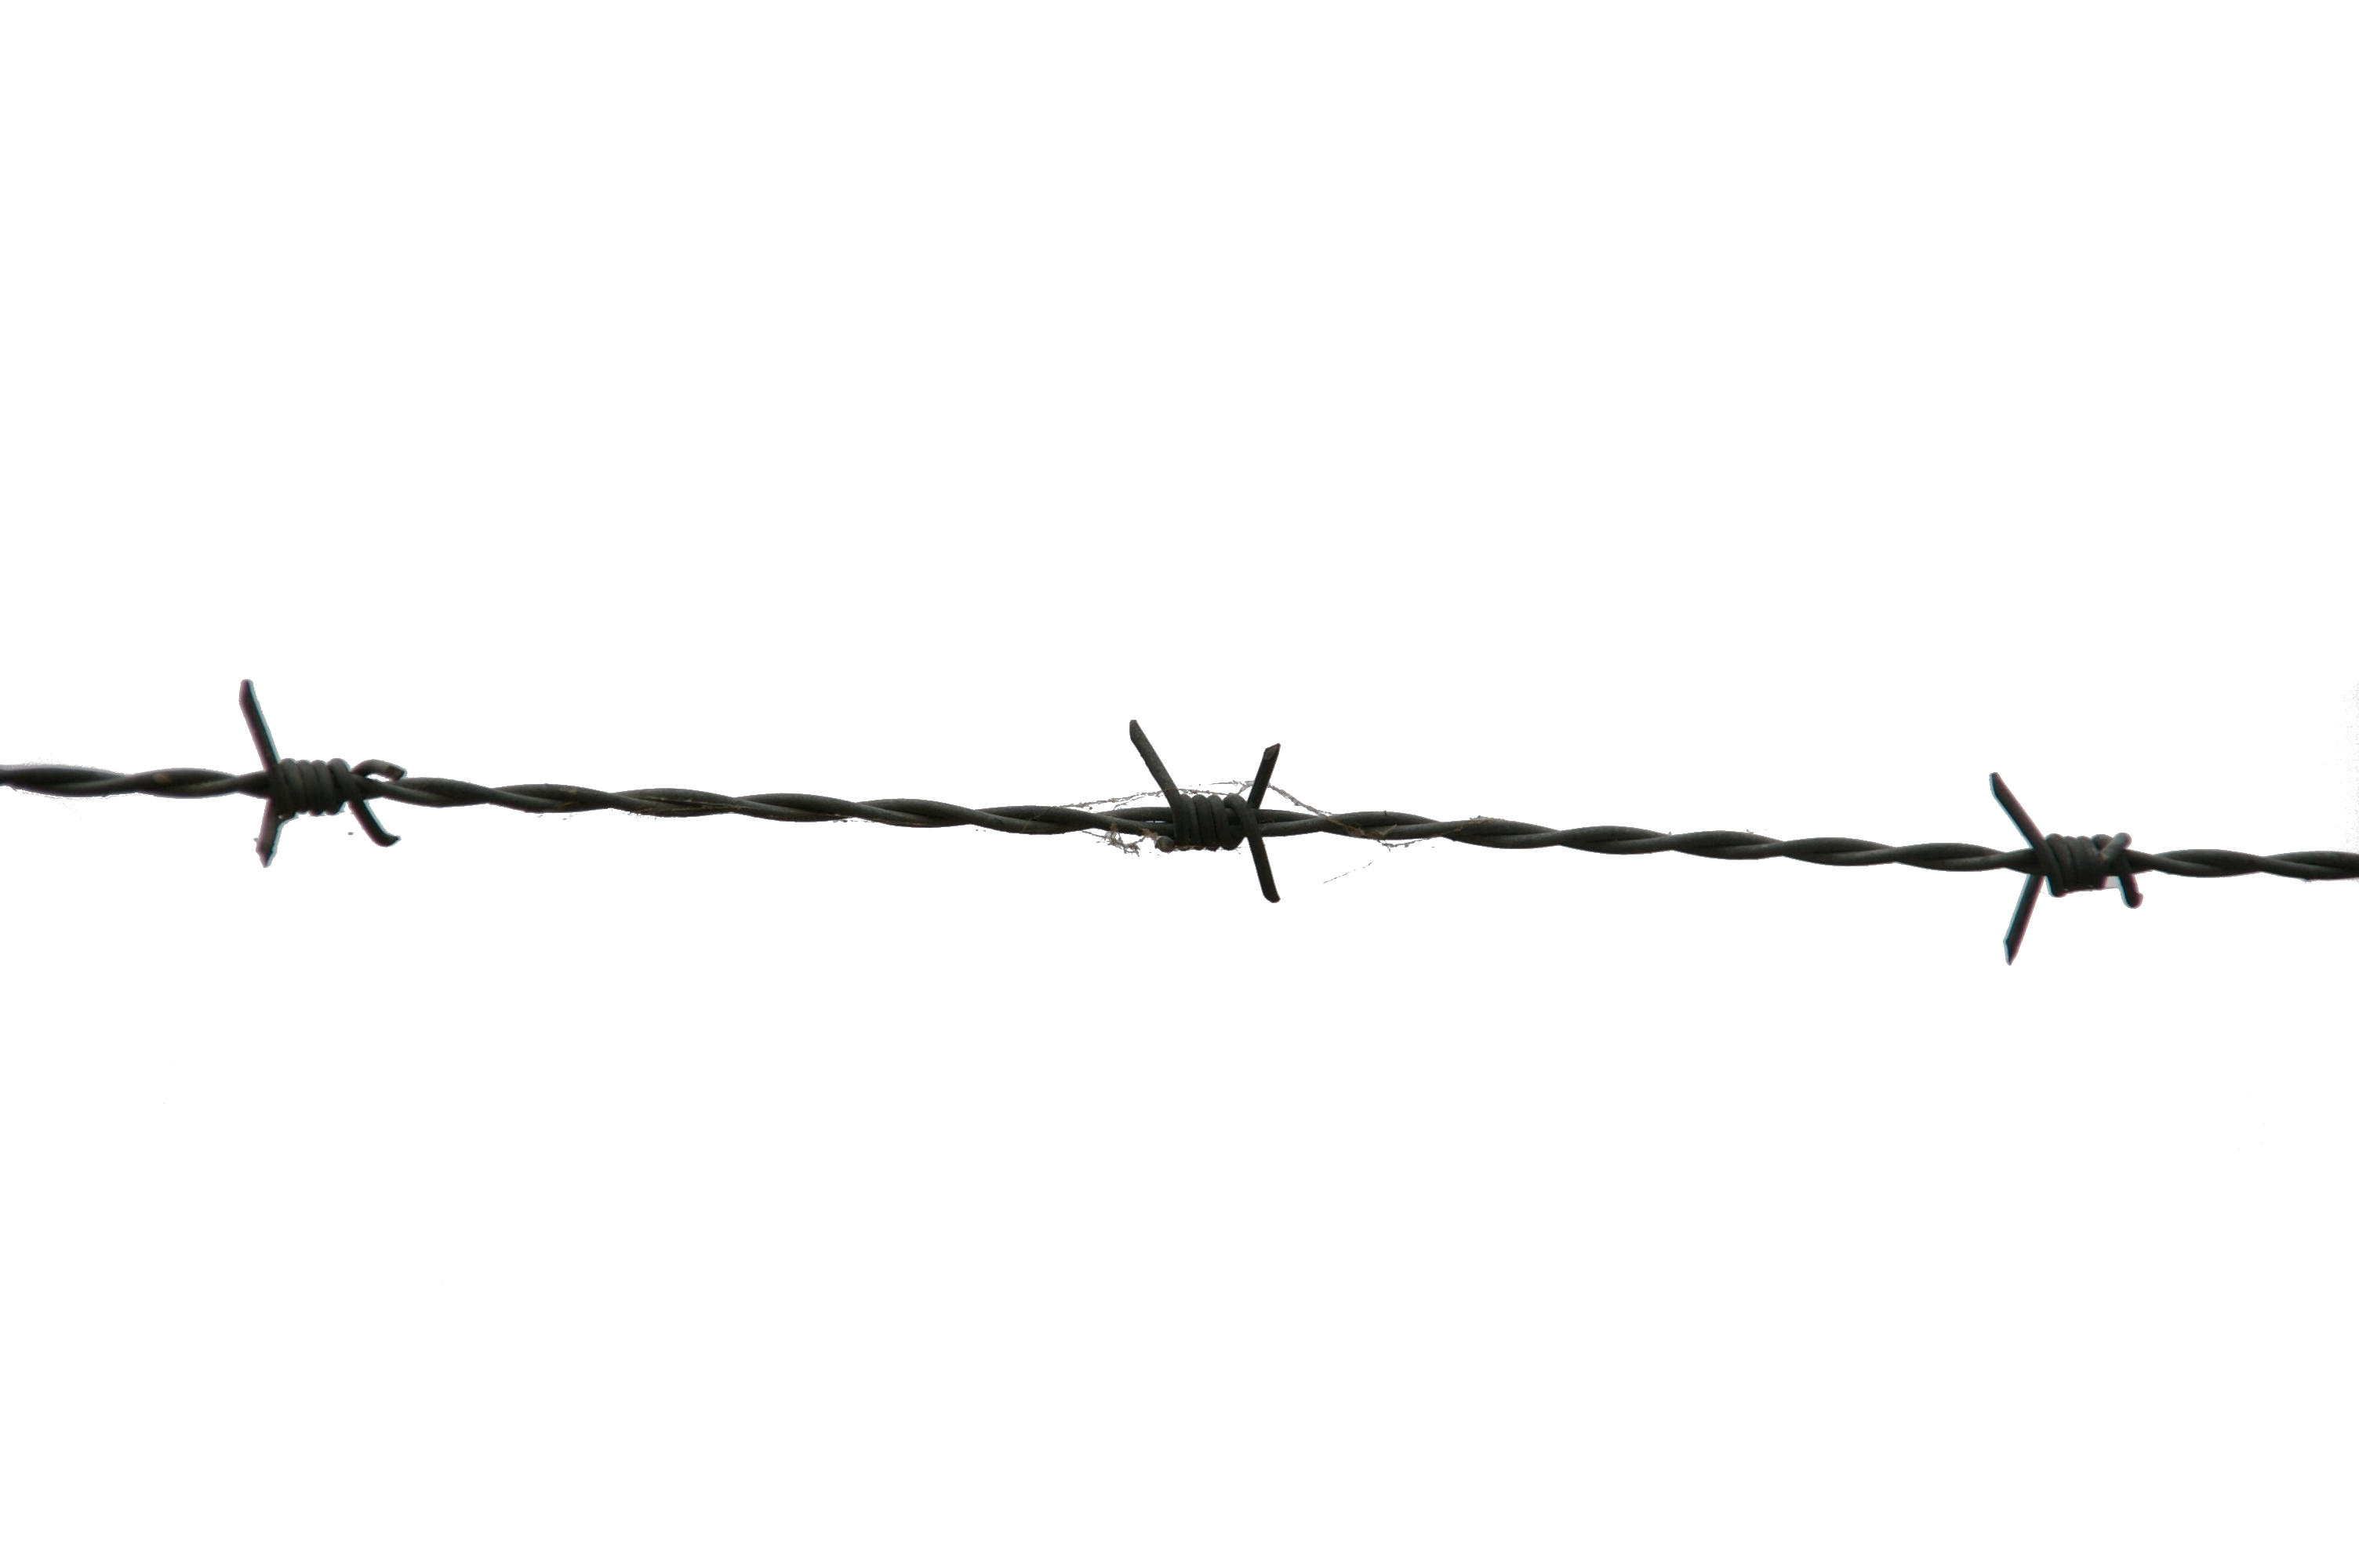 barbed wire drawing - photo #37